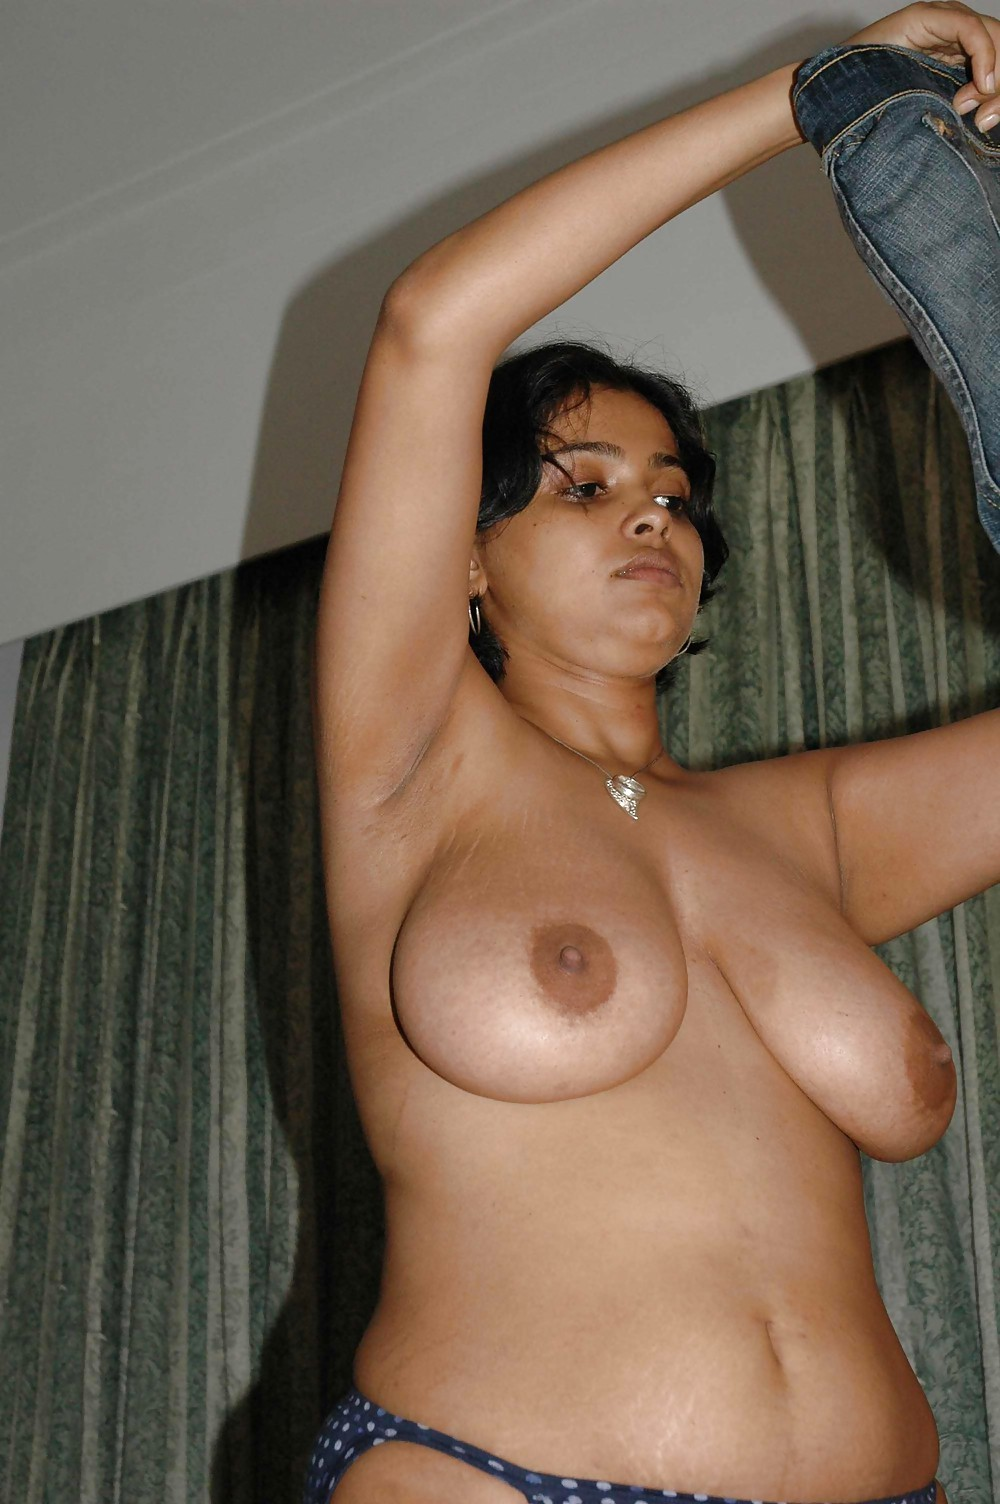 Indian breast sex pic — photo 5